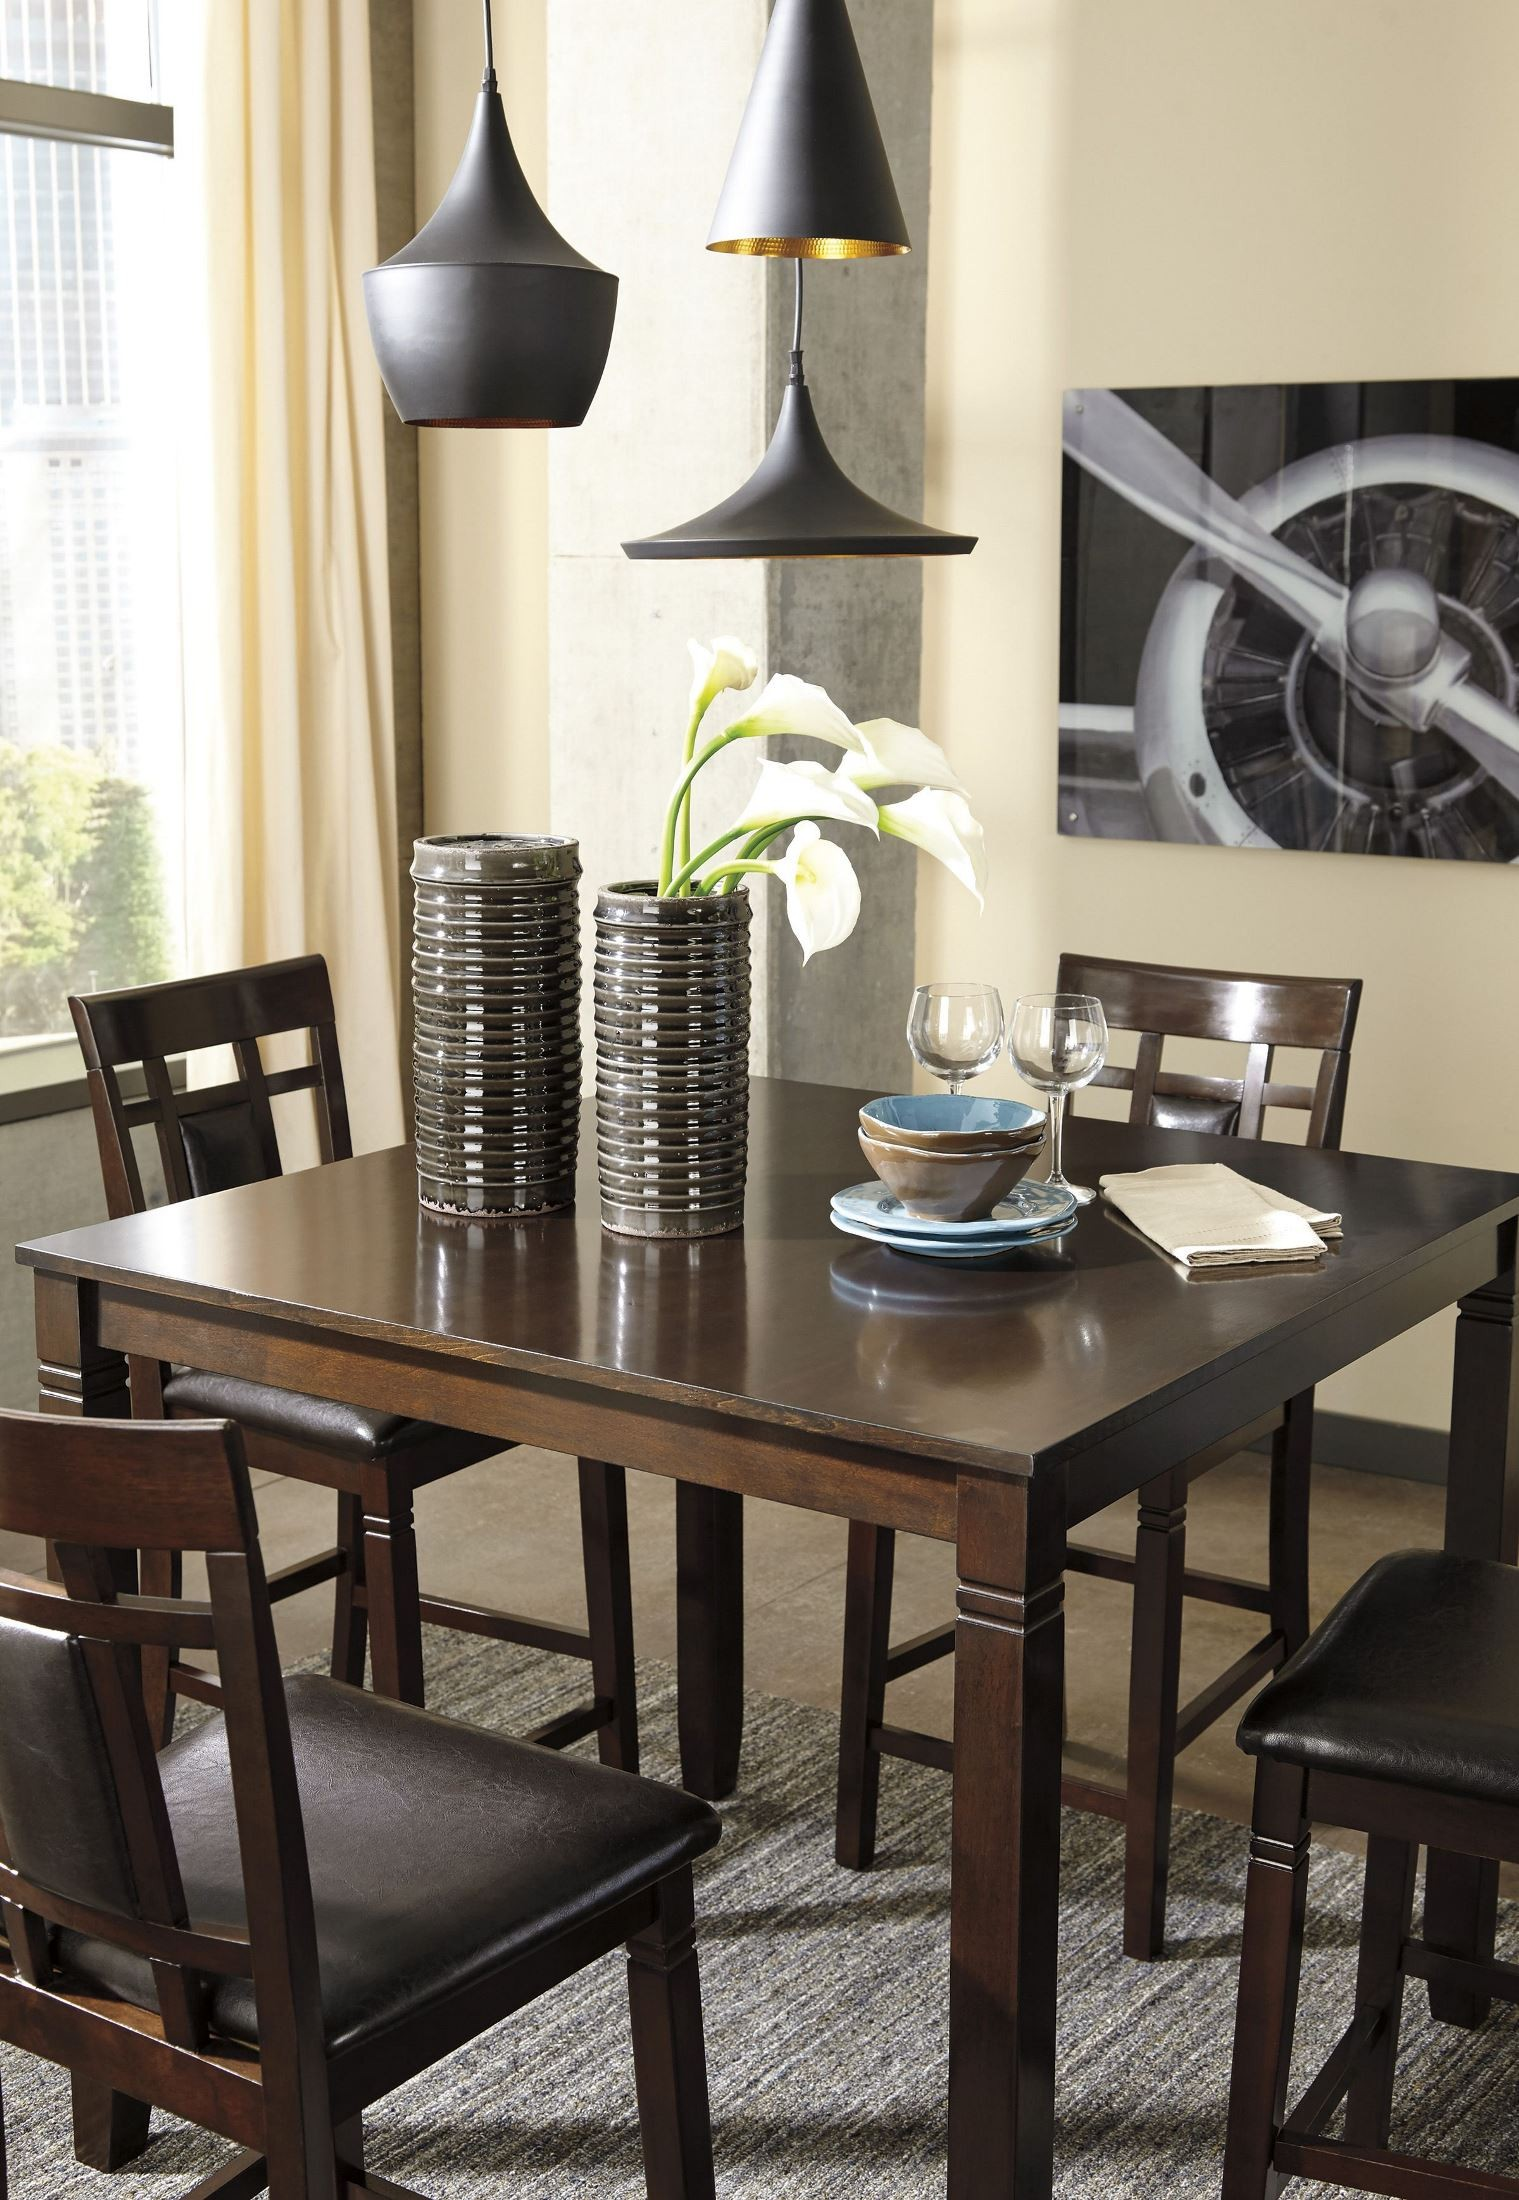 Bennox brown 5 piece counter height dining room set d384 for Brown dining room set